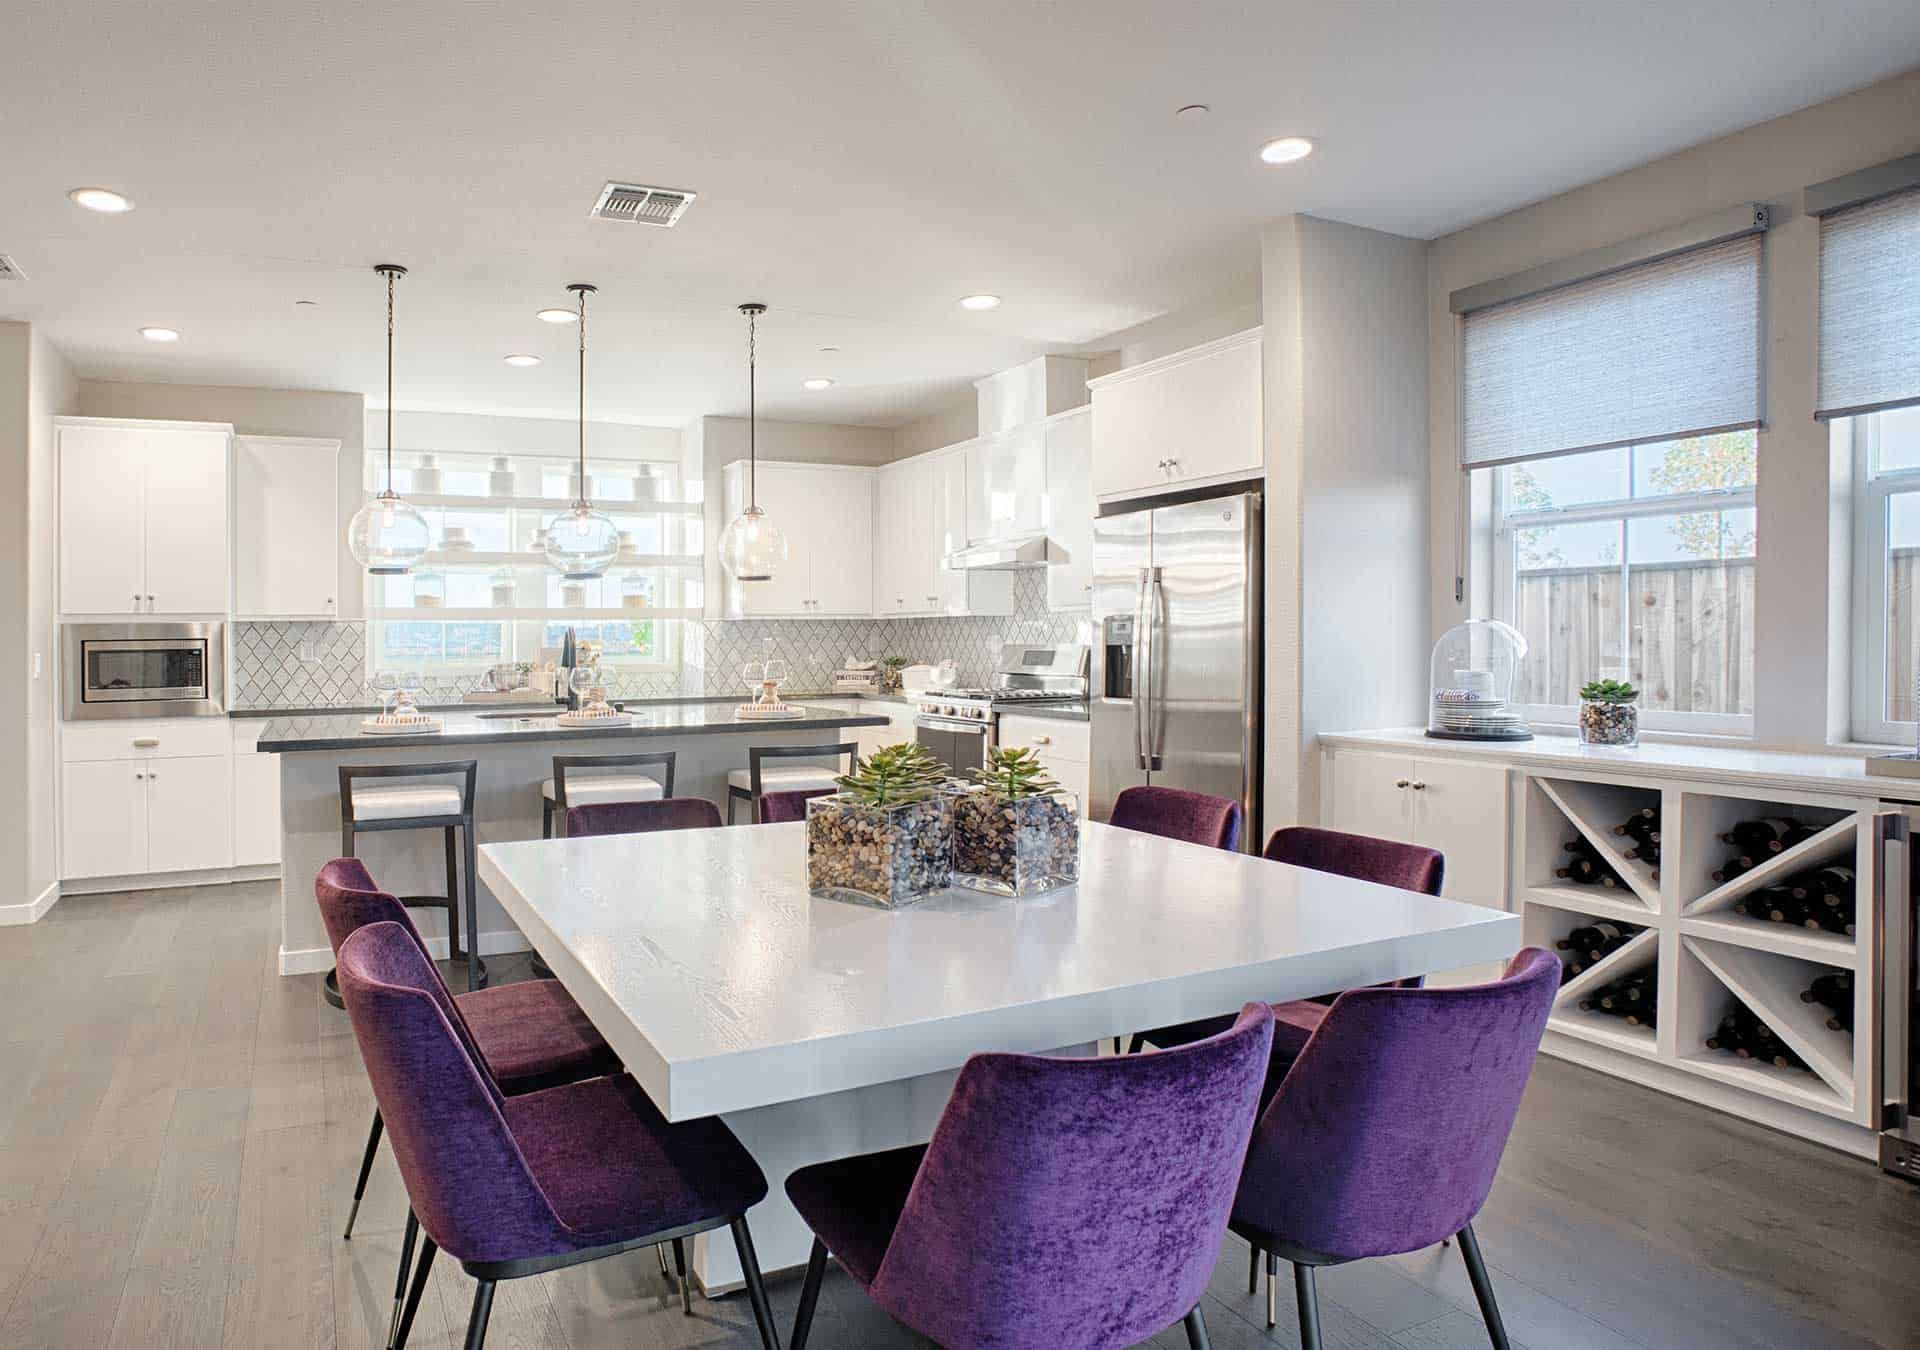 Kitchen featured in the Plan 3 By Tri Pointe Homes in Santa Rosa, CA